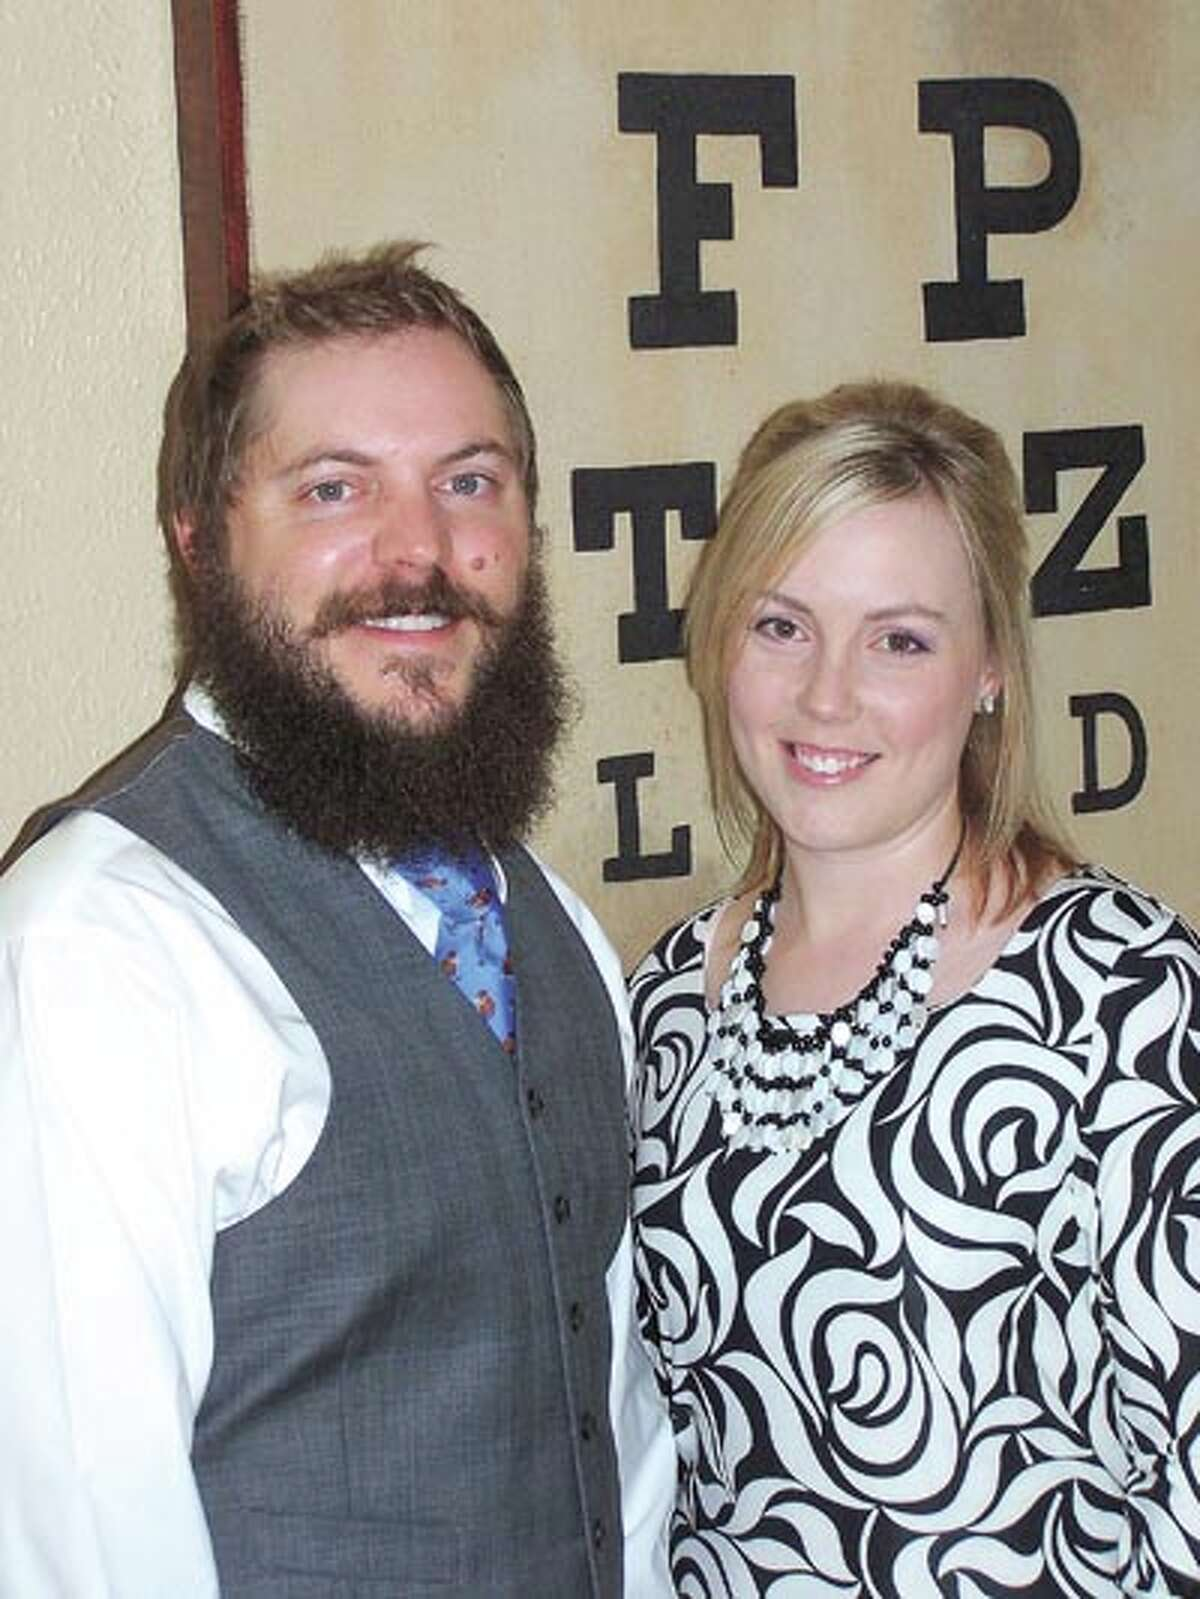 Drs. Blake and Heather Kern Golson have a variety of treatments for dry eyes. Call 684-7287 for an appointment.